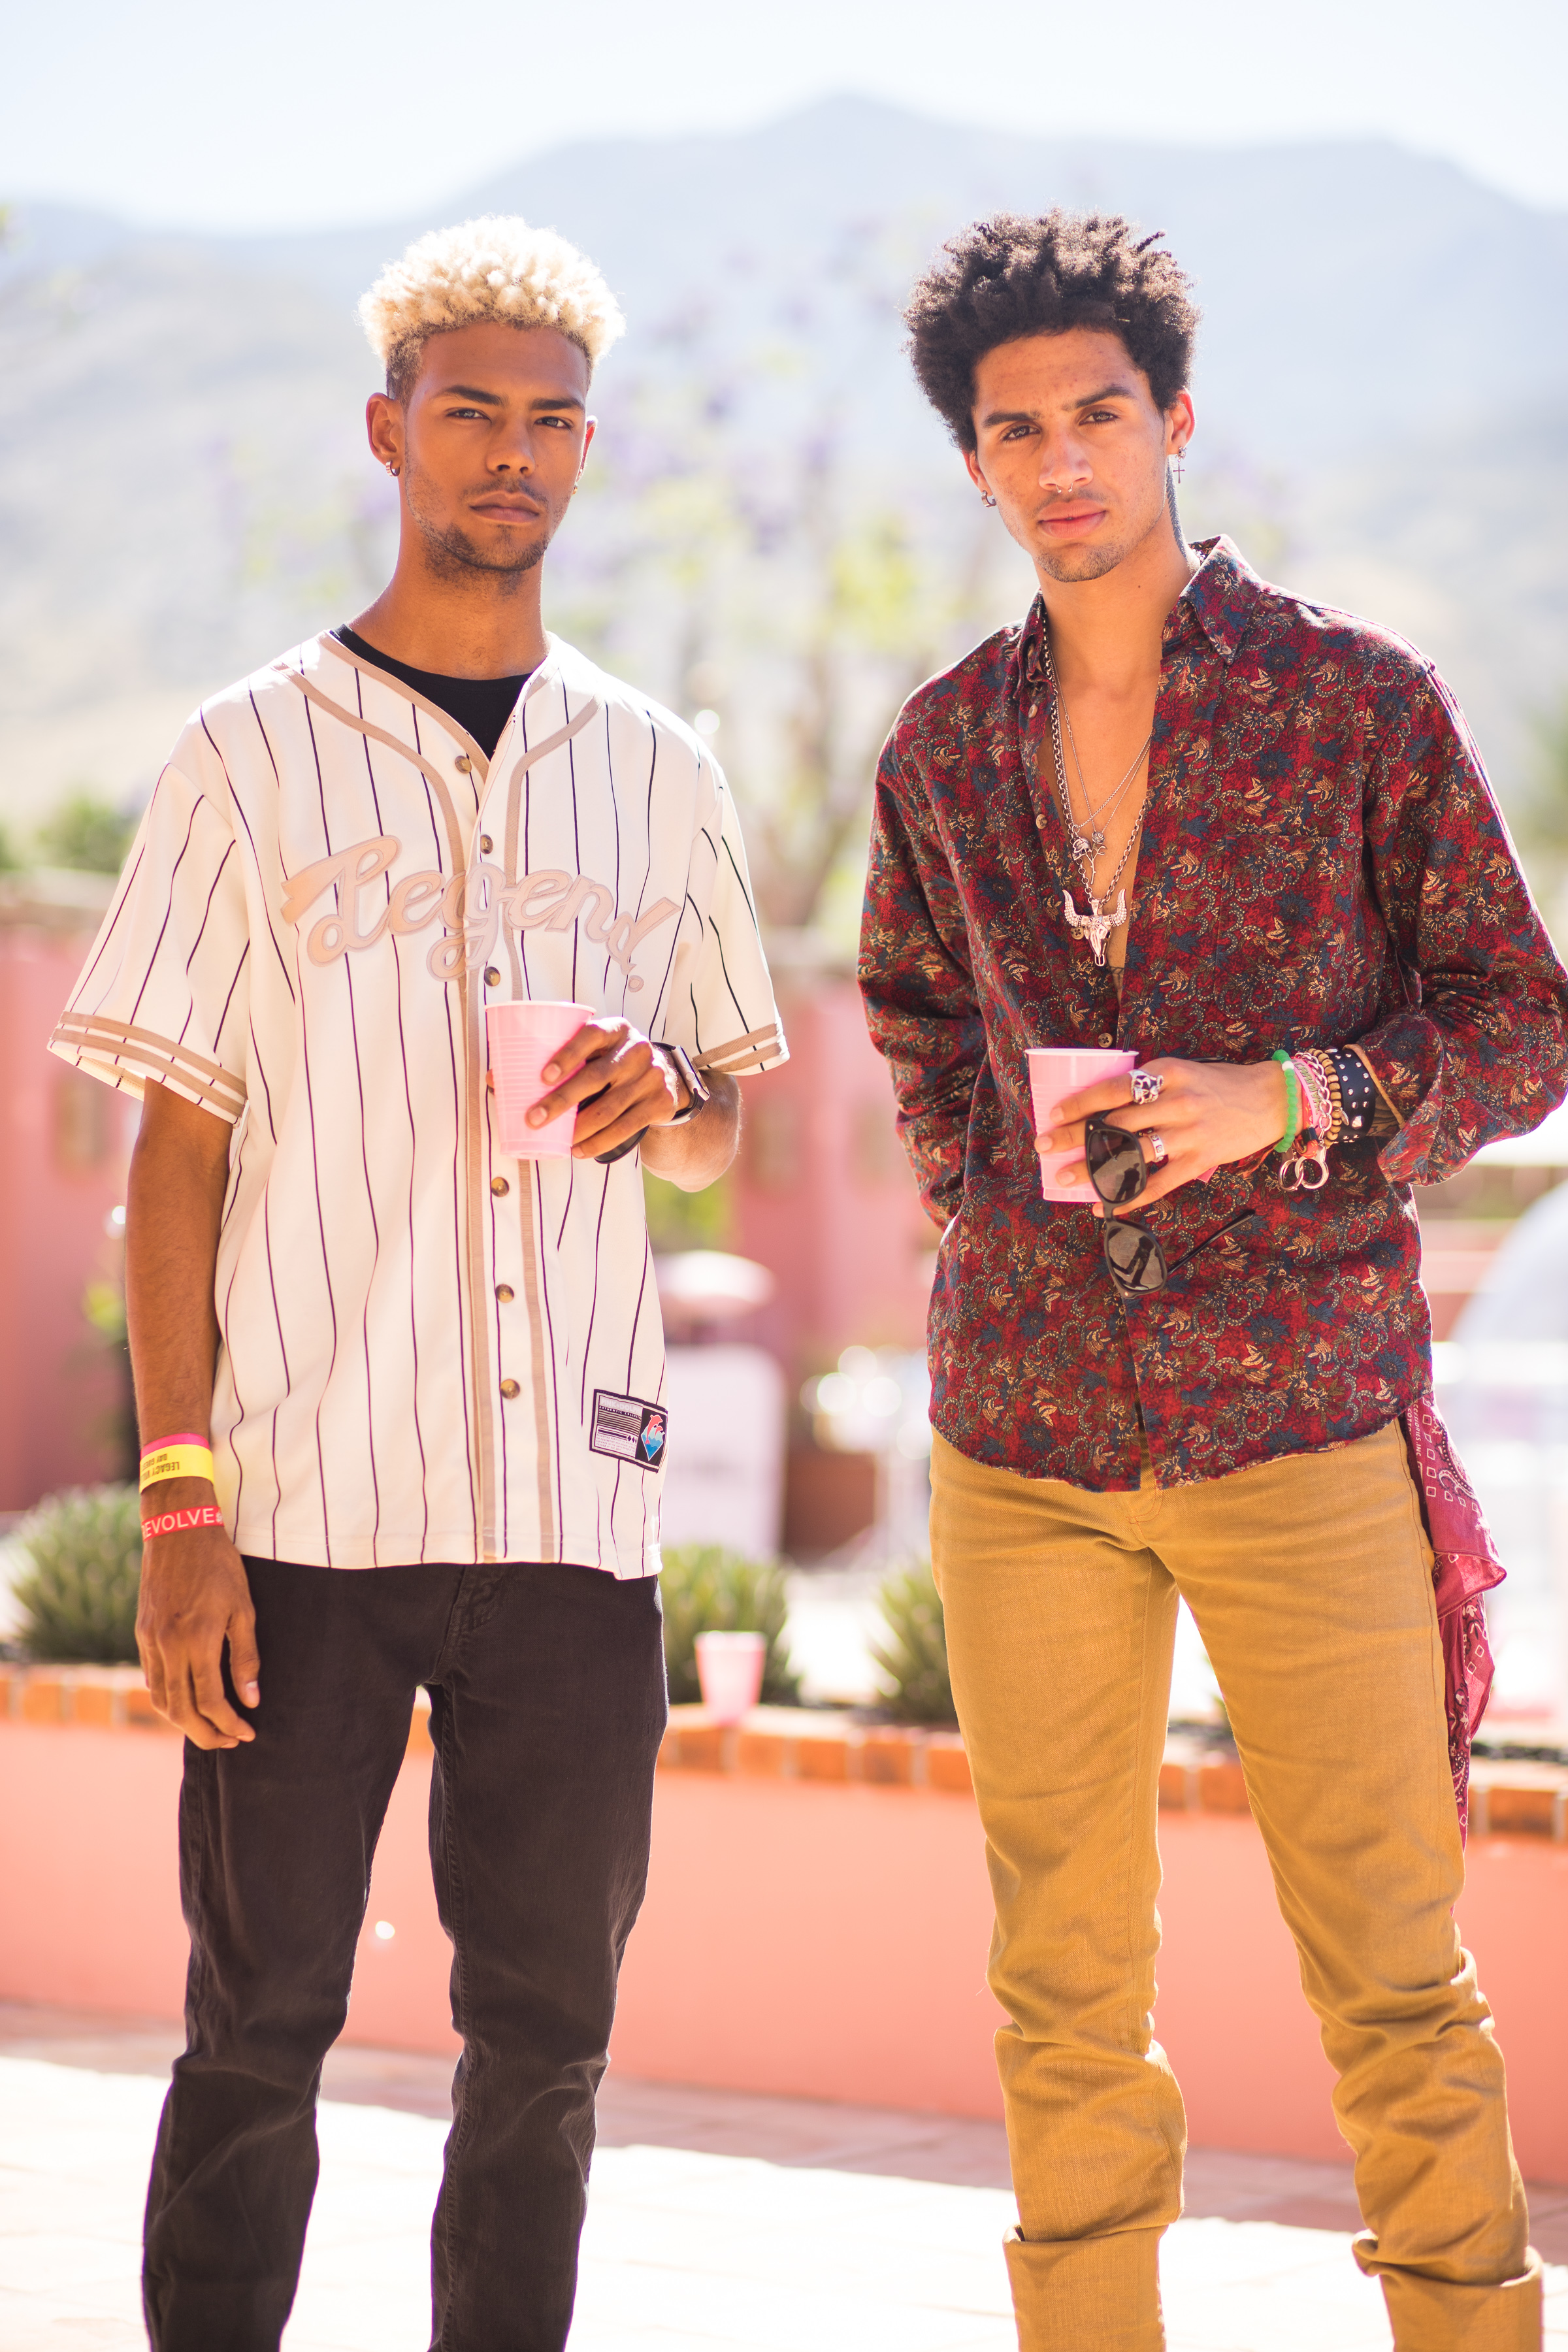 Ultimate Hollywood Coachella Poolside Party two dudes.jpg